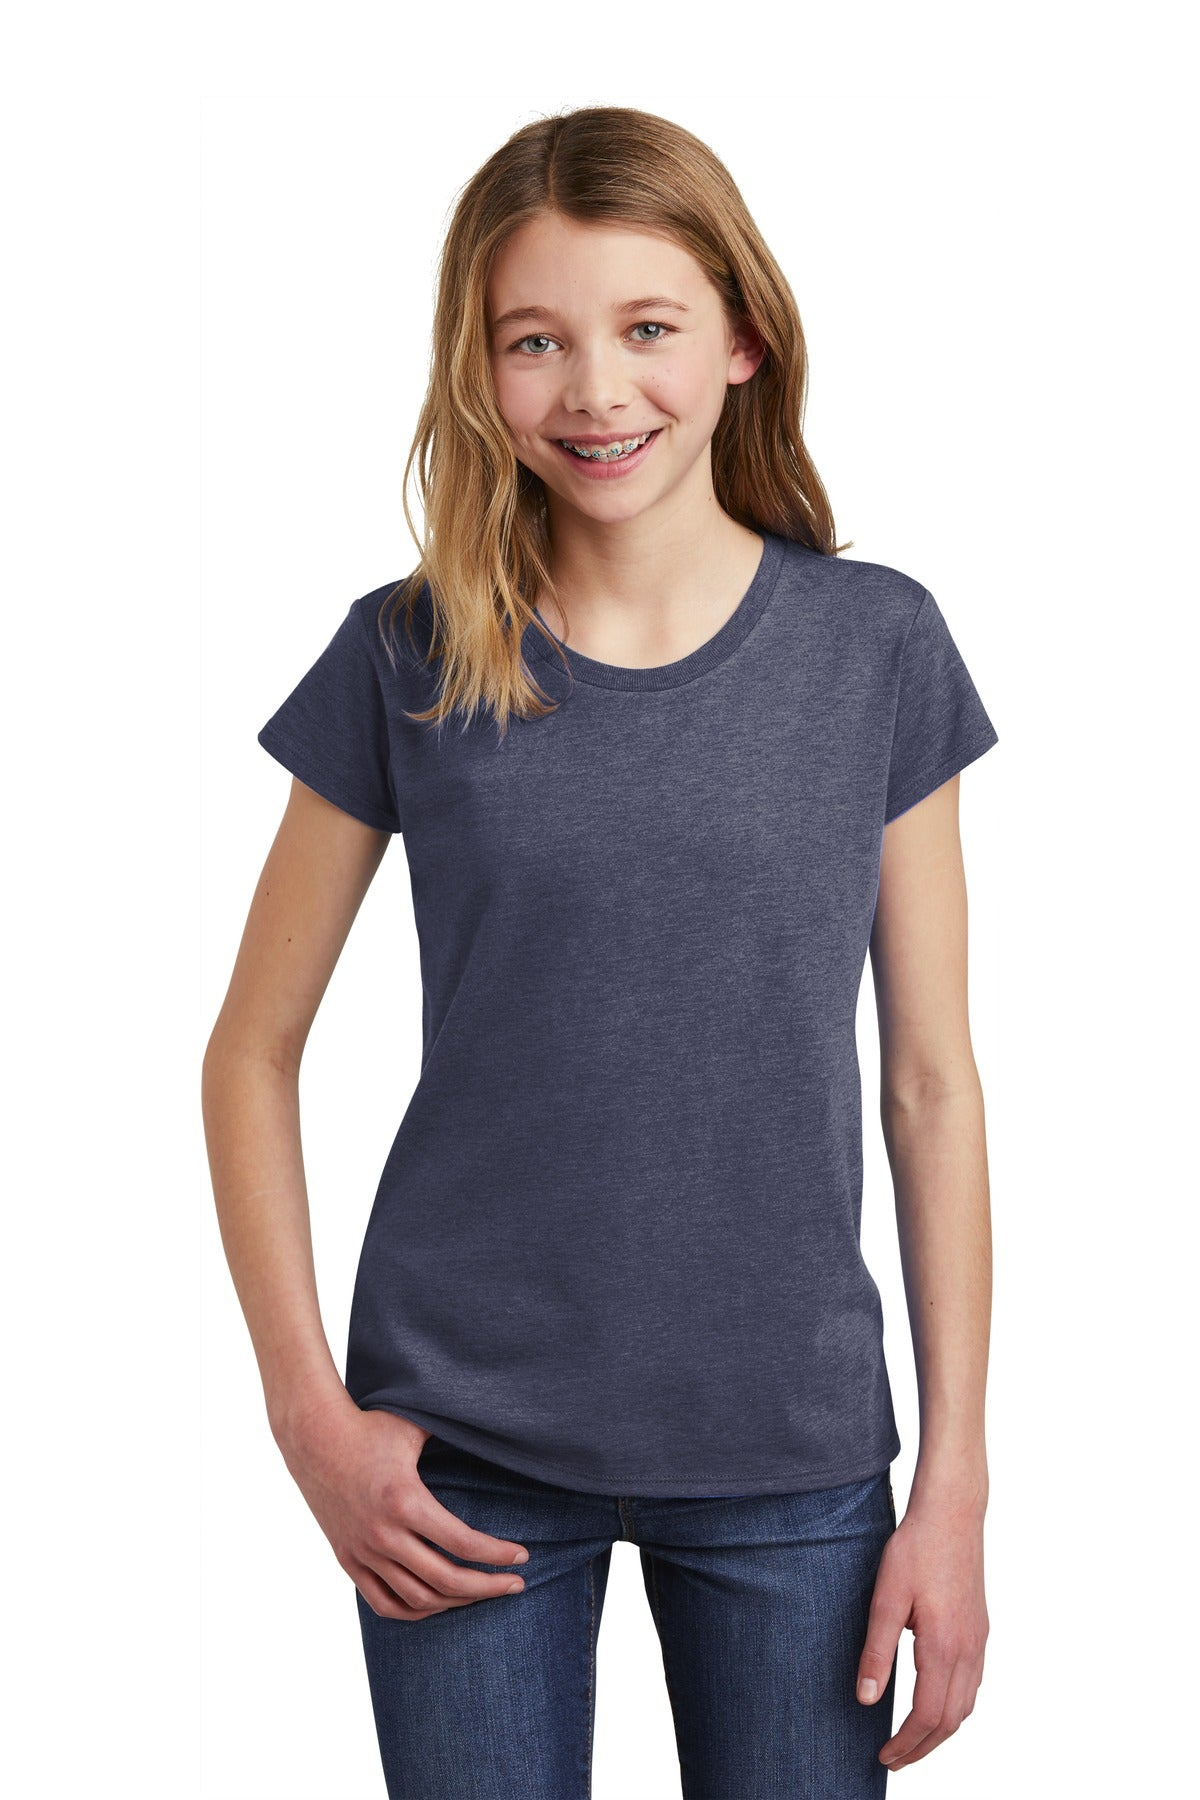 District DT6001YG Girls Very Important Tee - Heathered Navy - HIT A Double